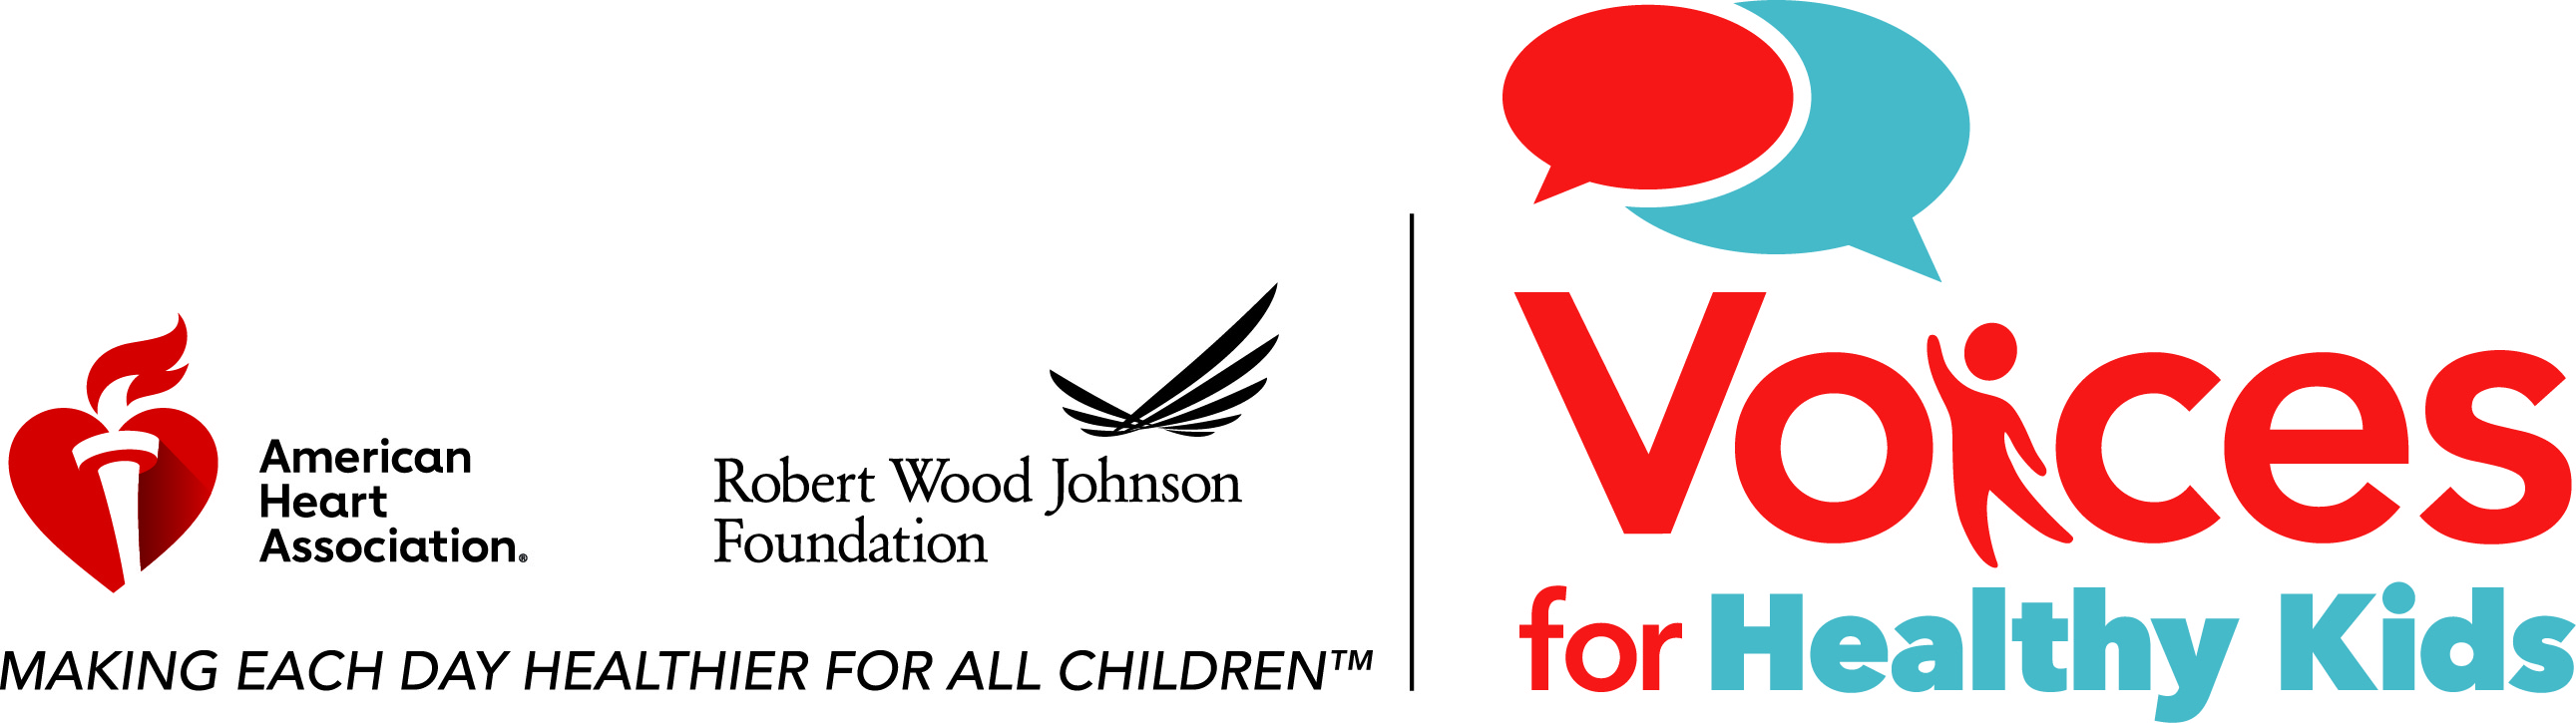 Voices for Healthy Kids Is Looking for an Advocacy Trainer!